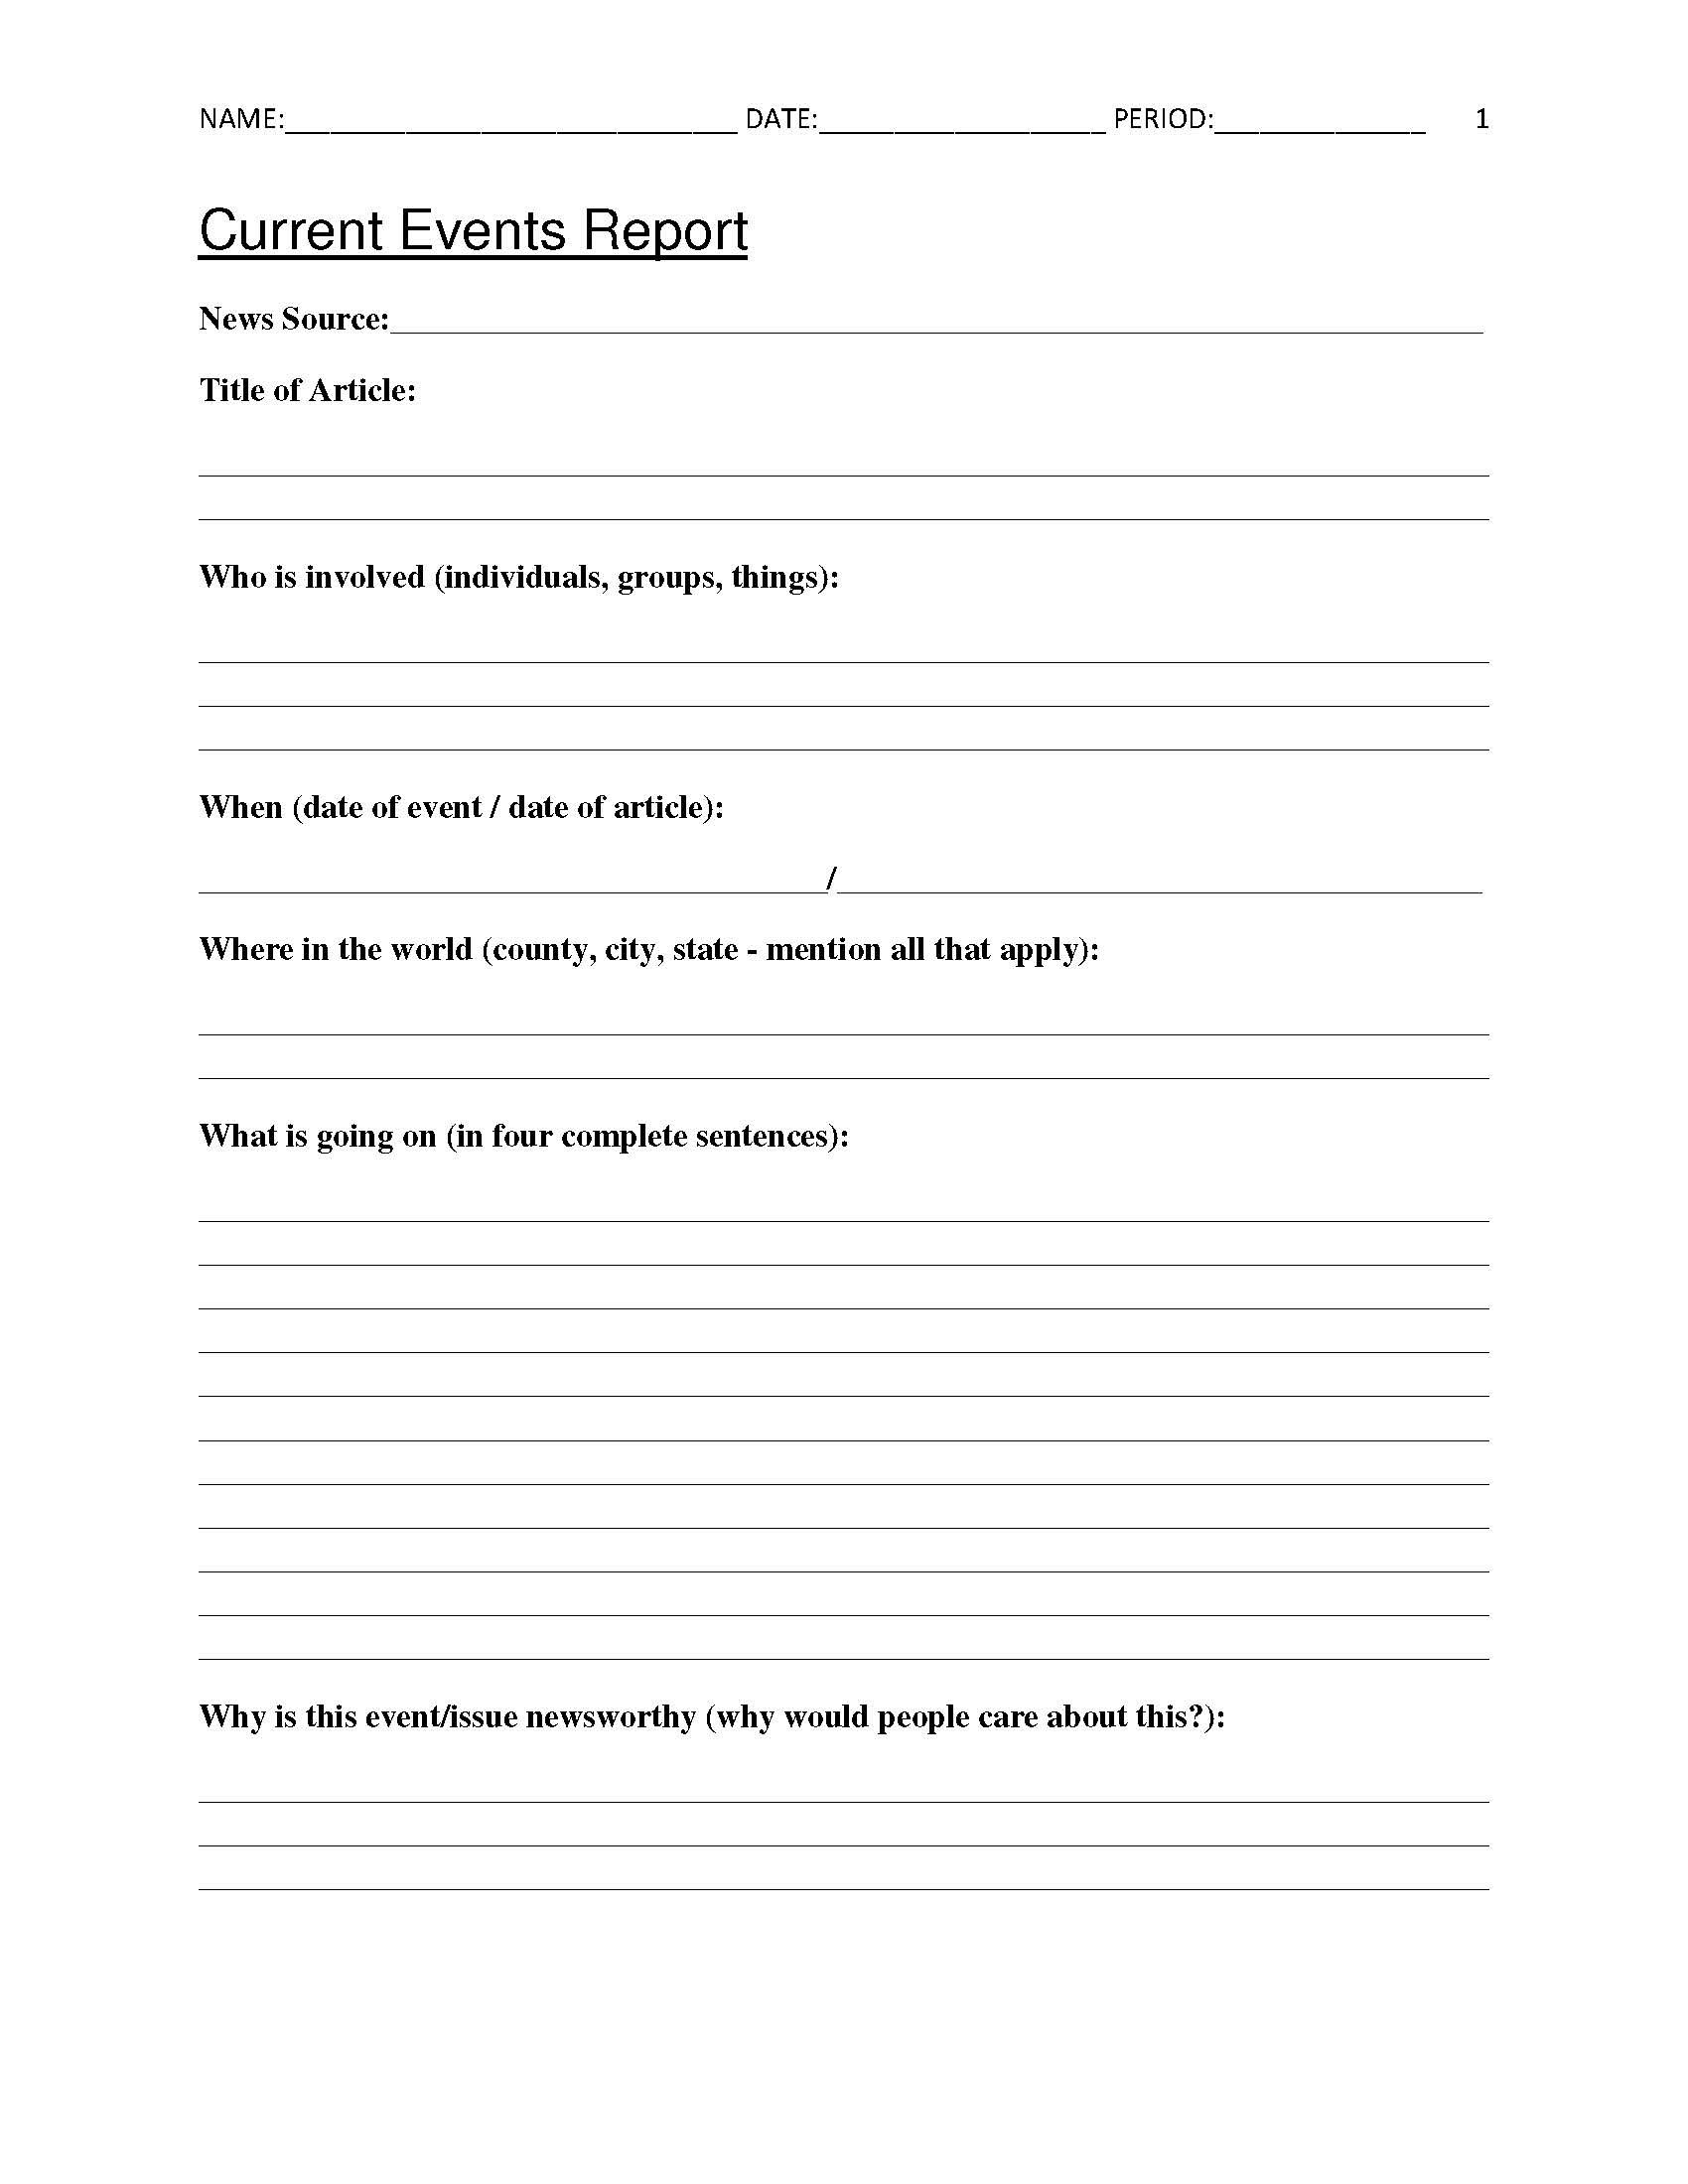 Free Current Events Report Worksheet For Classroom Teachers - Free Printable 8Th Grade Social Studies Worksheets